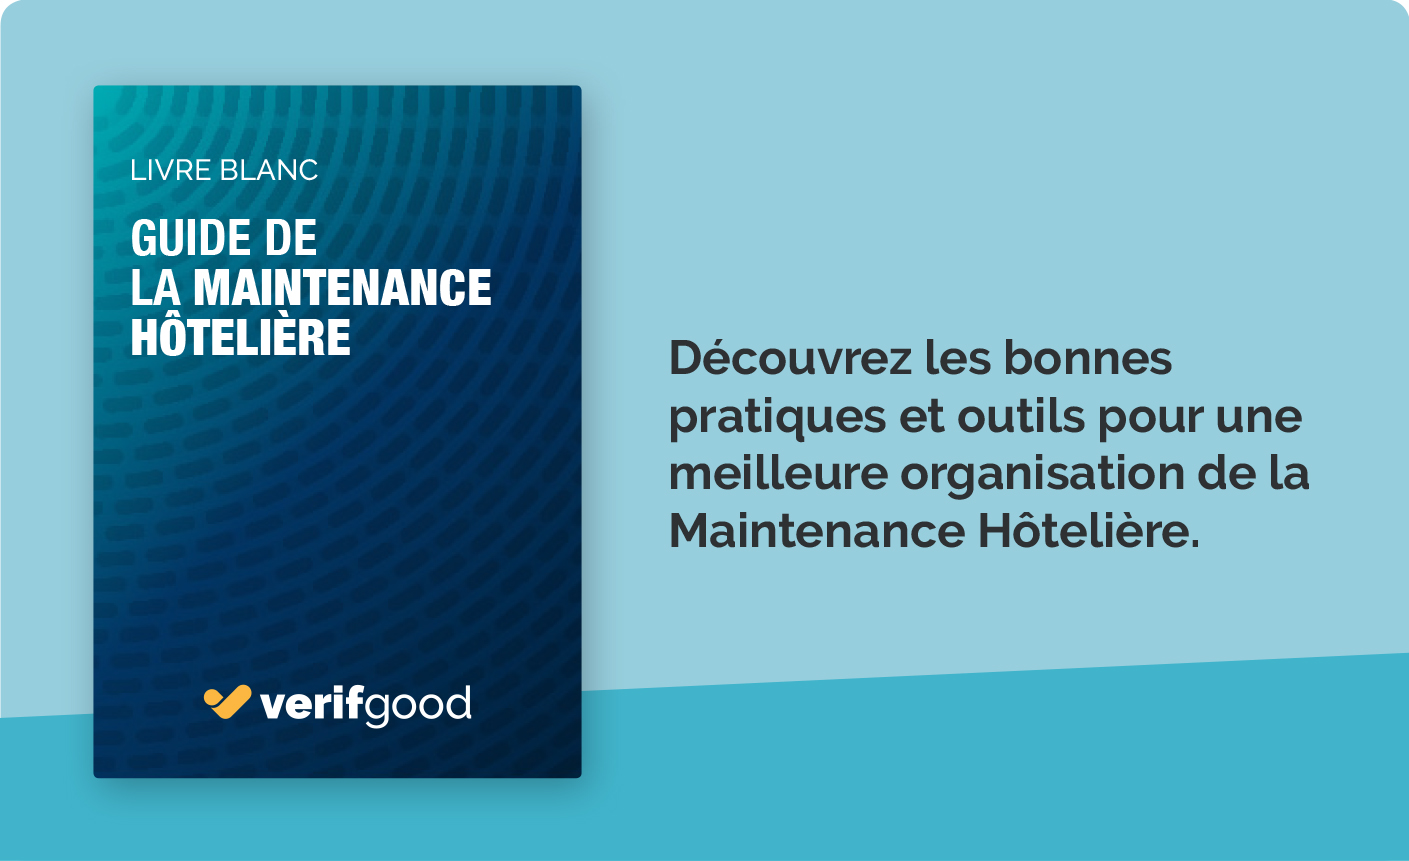 guide de la maintenance hoteliere-1